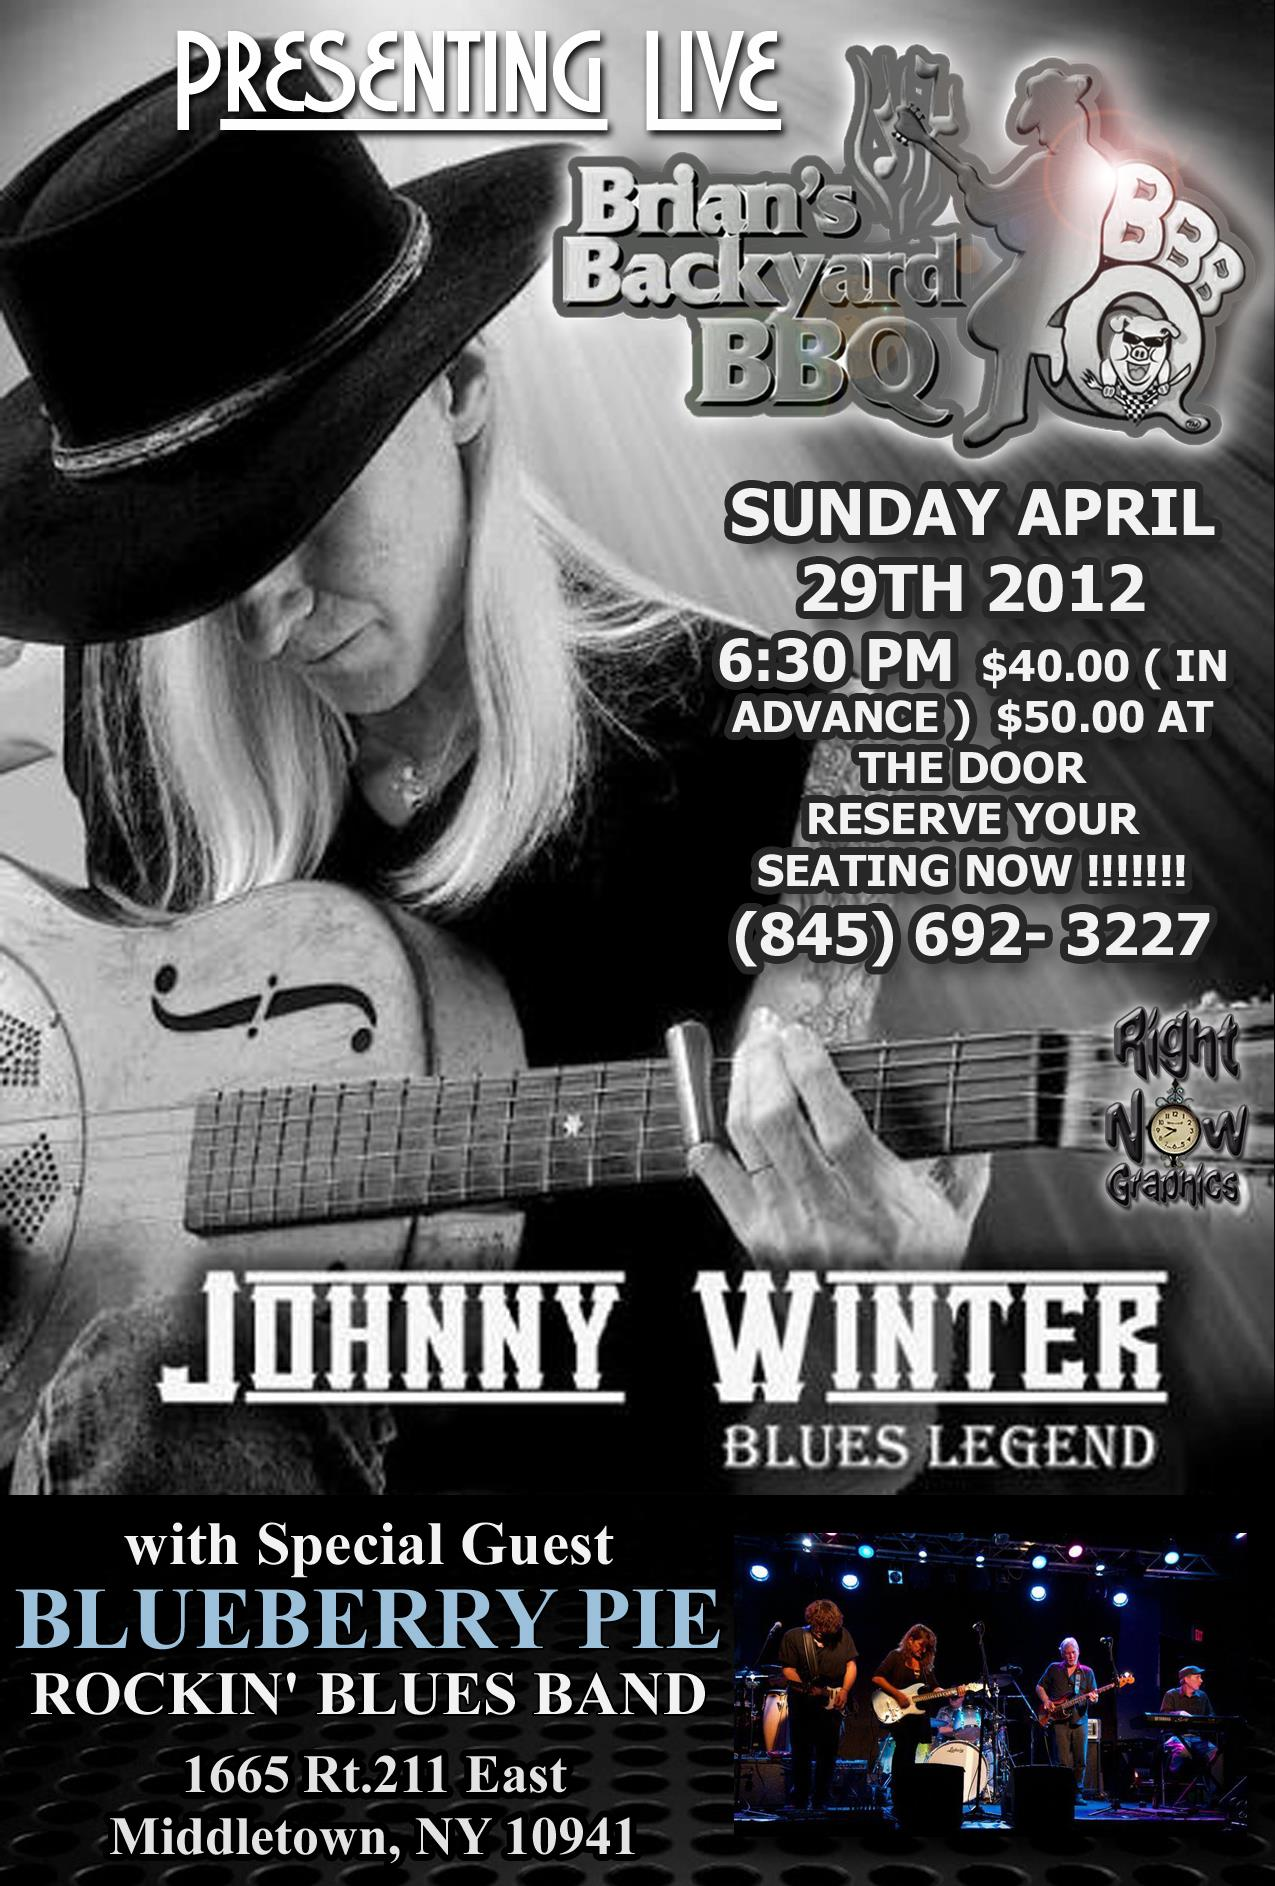 Johnny Winter/Blueberry Pie at Brians                         Backyard BBQ